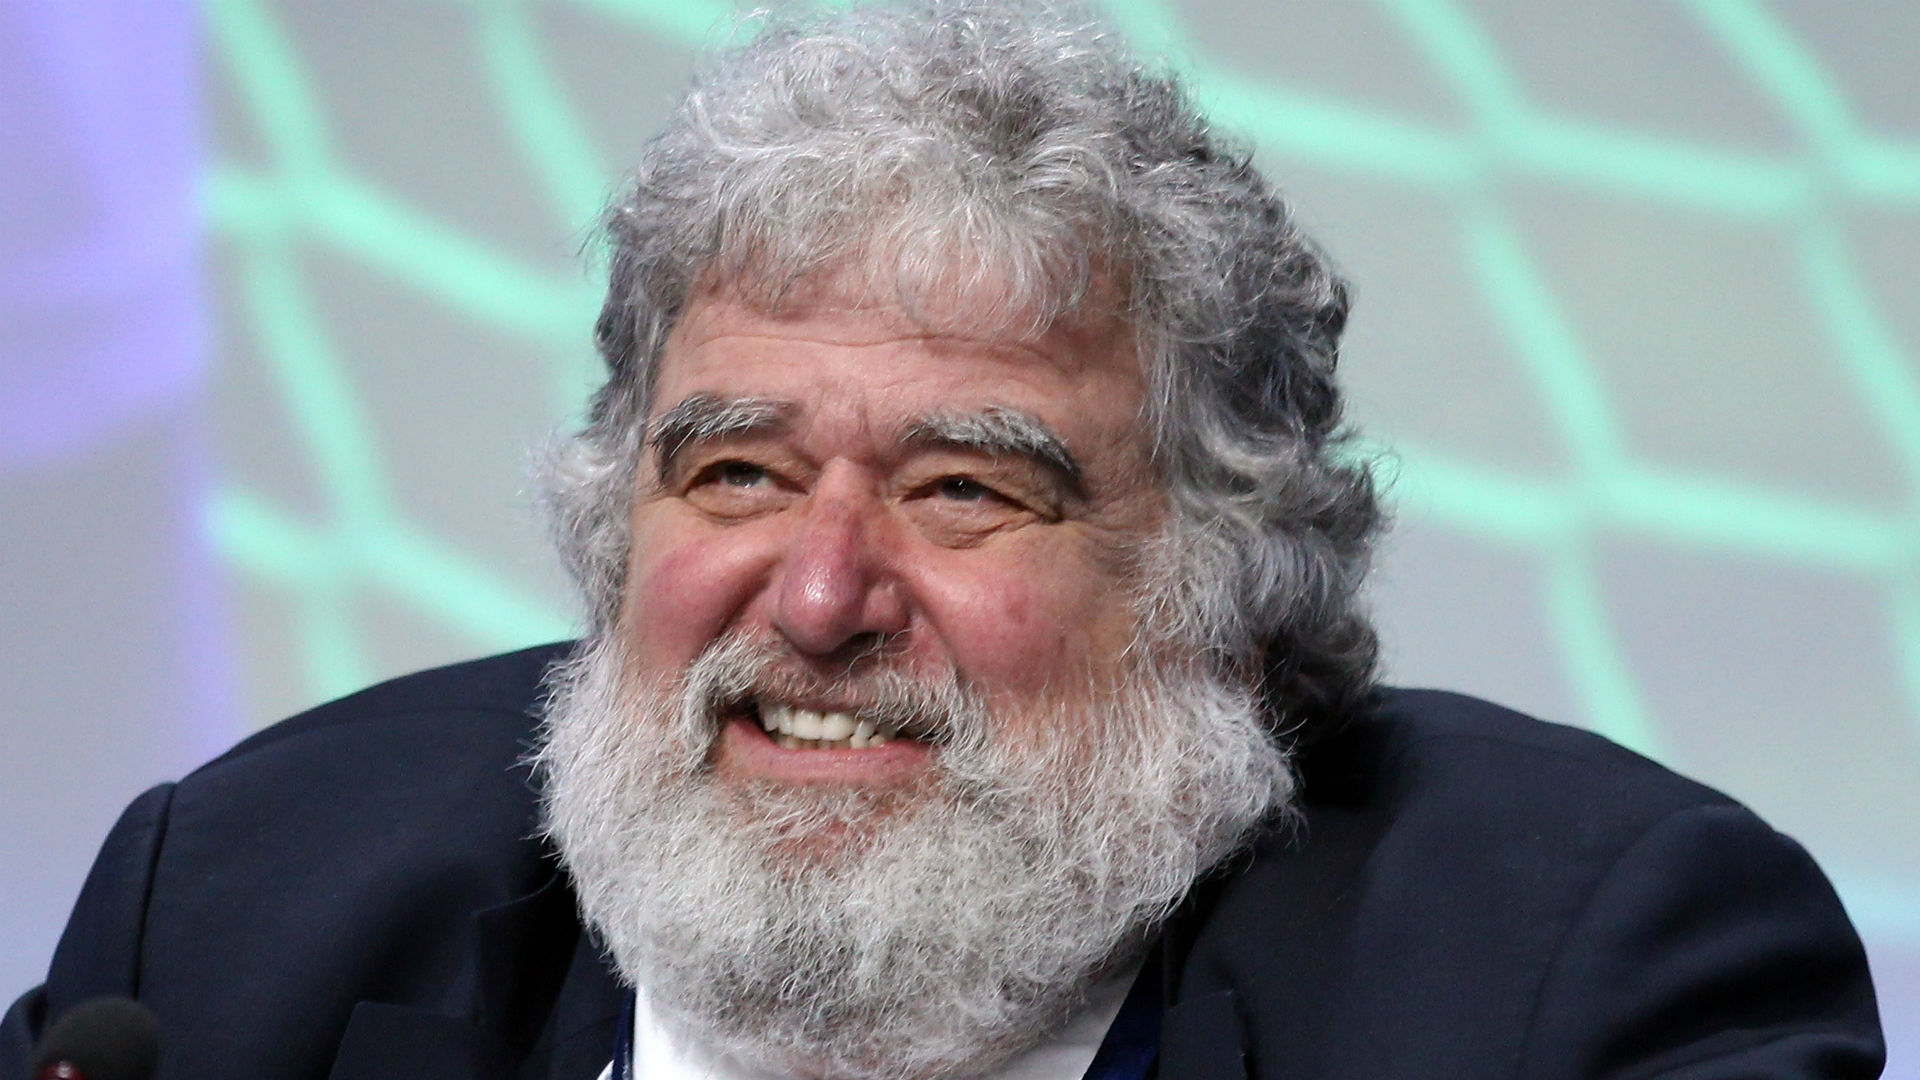 FIFA informant Chuck Blazer's lavish lifestyle reportedly included a condo for his cats